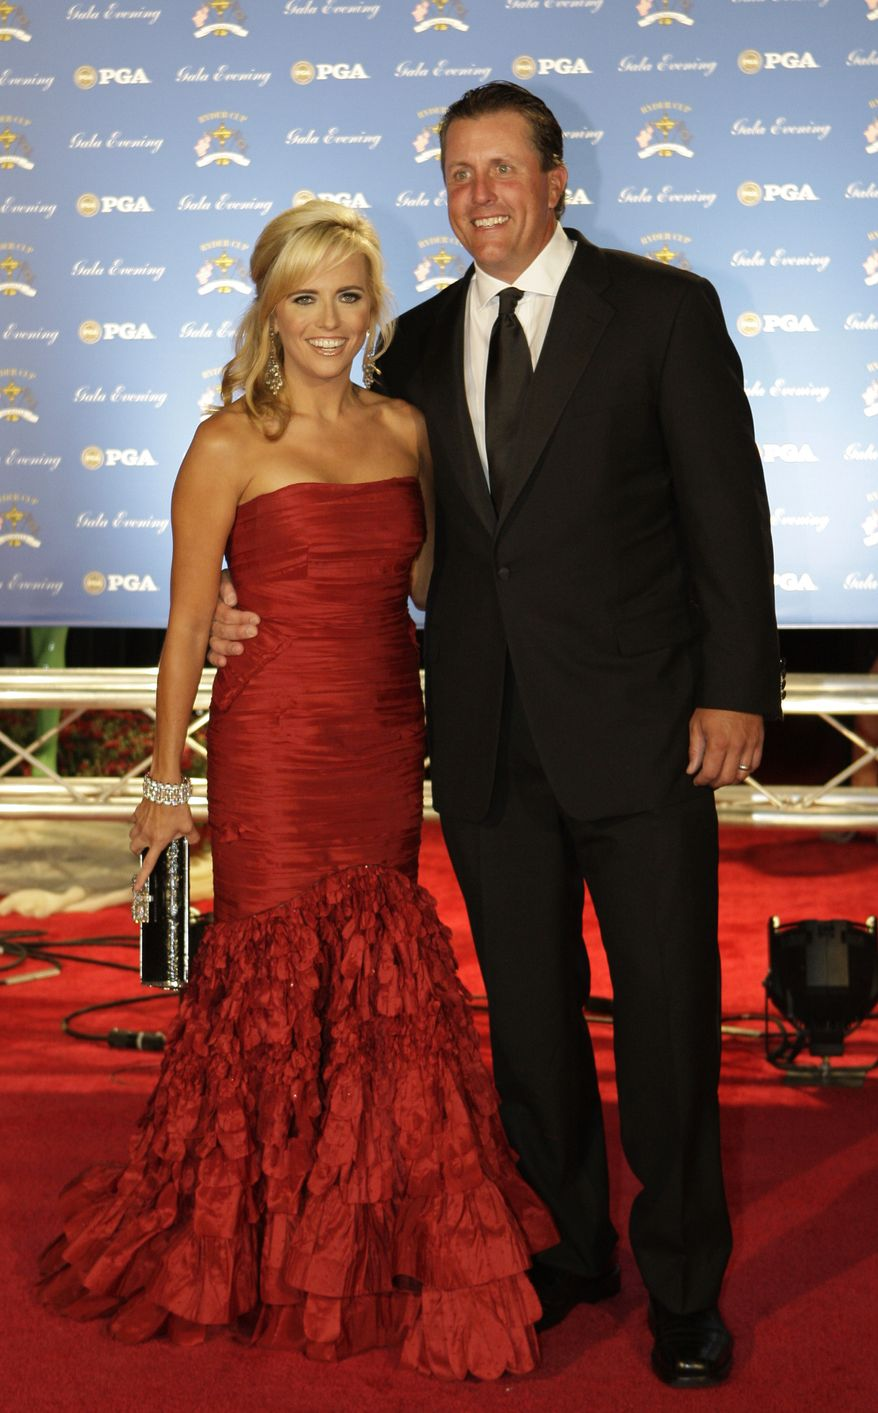 United States Ryder Cup golfer Phil Mickelson and his wife Amy arrive at the 37th Ryder Cup Gala in Louisville, Ky., Wednesday, Sept. 17, 2008. (AP Photo/Rob Carr)']